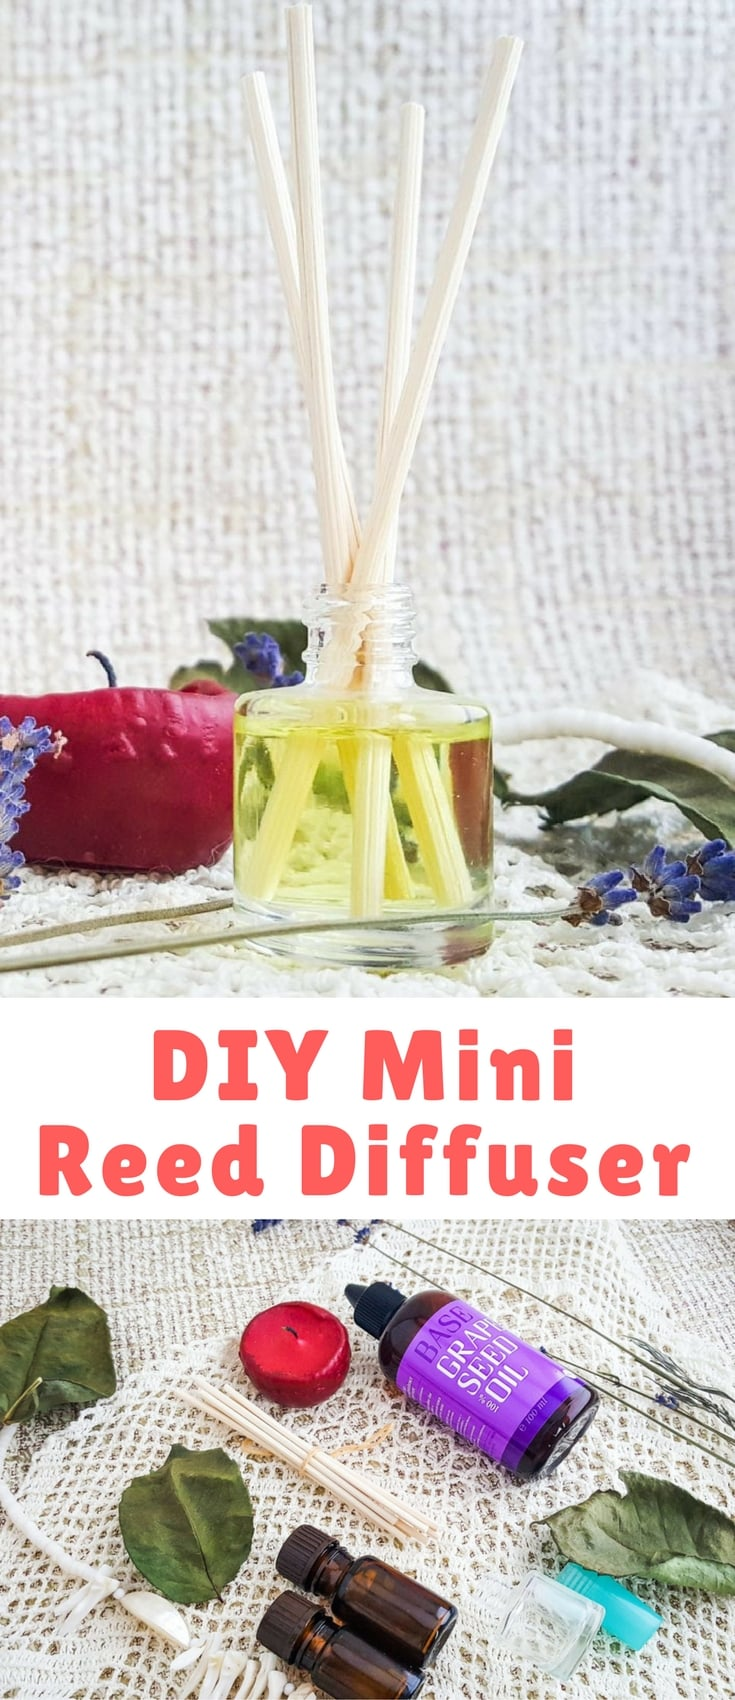 My number one tool for using essential oils at home is trough ultrasonic diffuser whichgenerates really relaxingcool mist. But there are special places like bathroom or pantry which require constant odor control rather than occasional avalanche ofconcentrated scent.